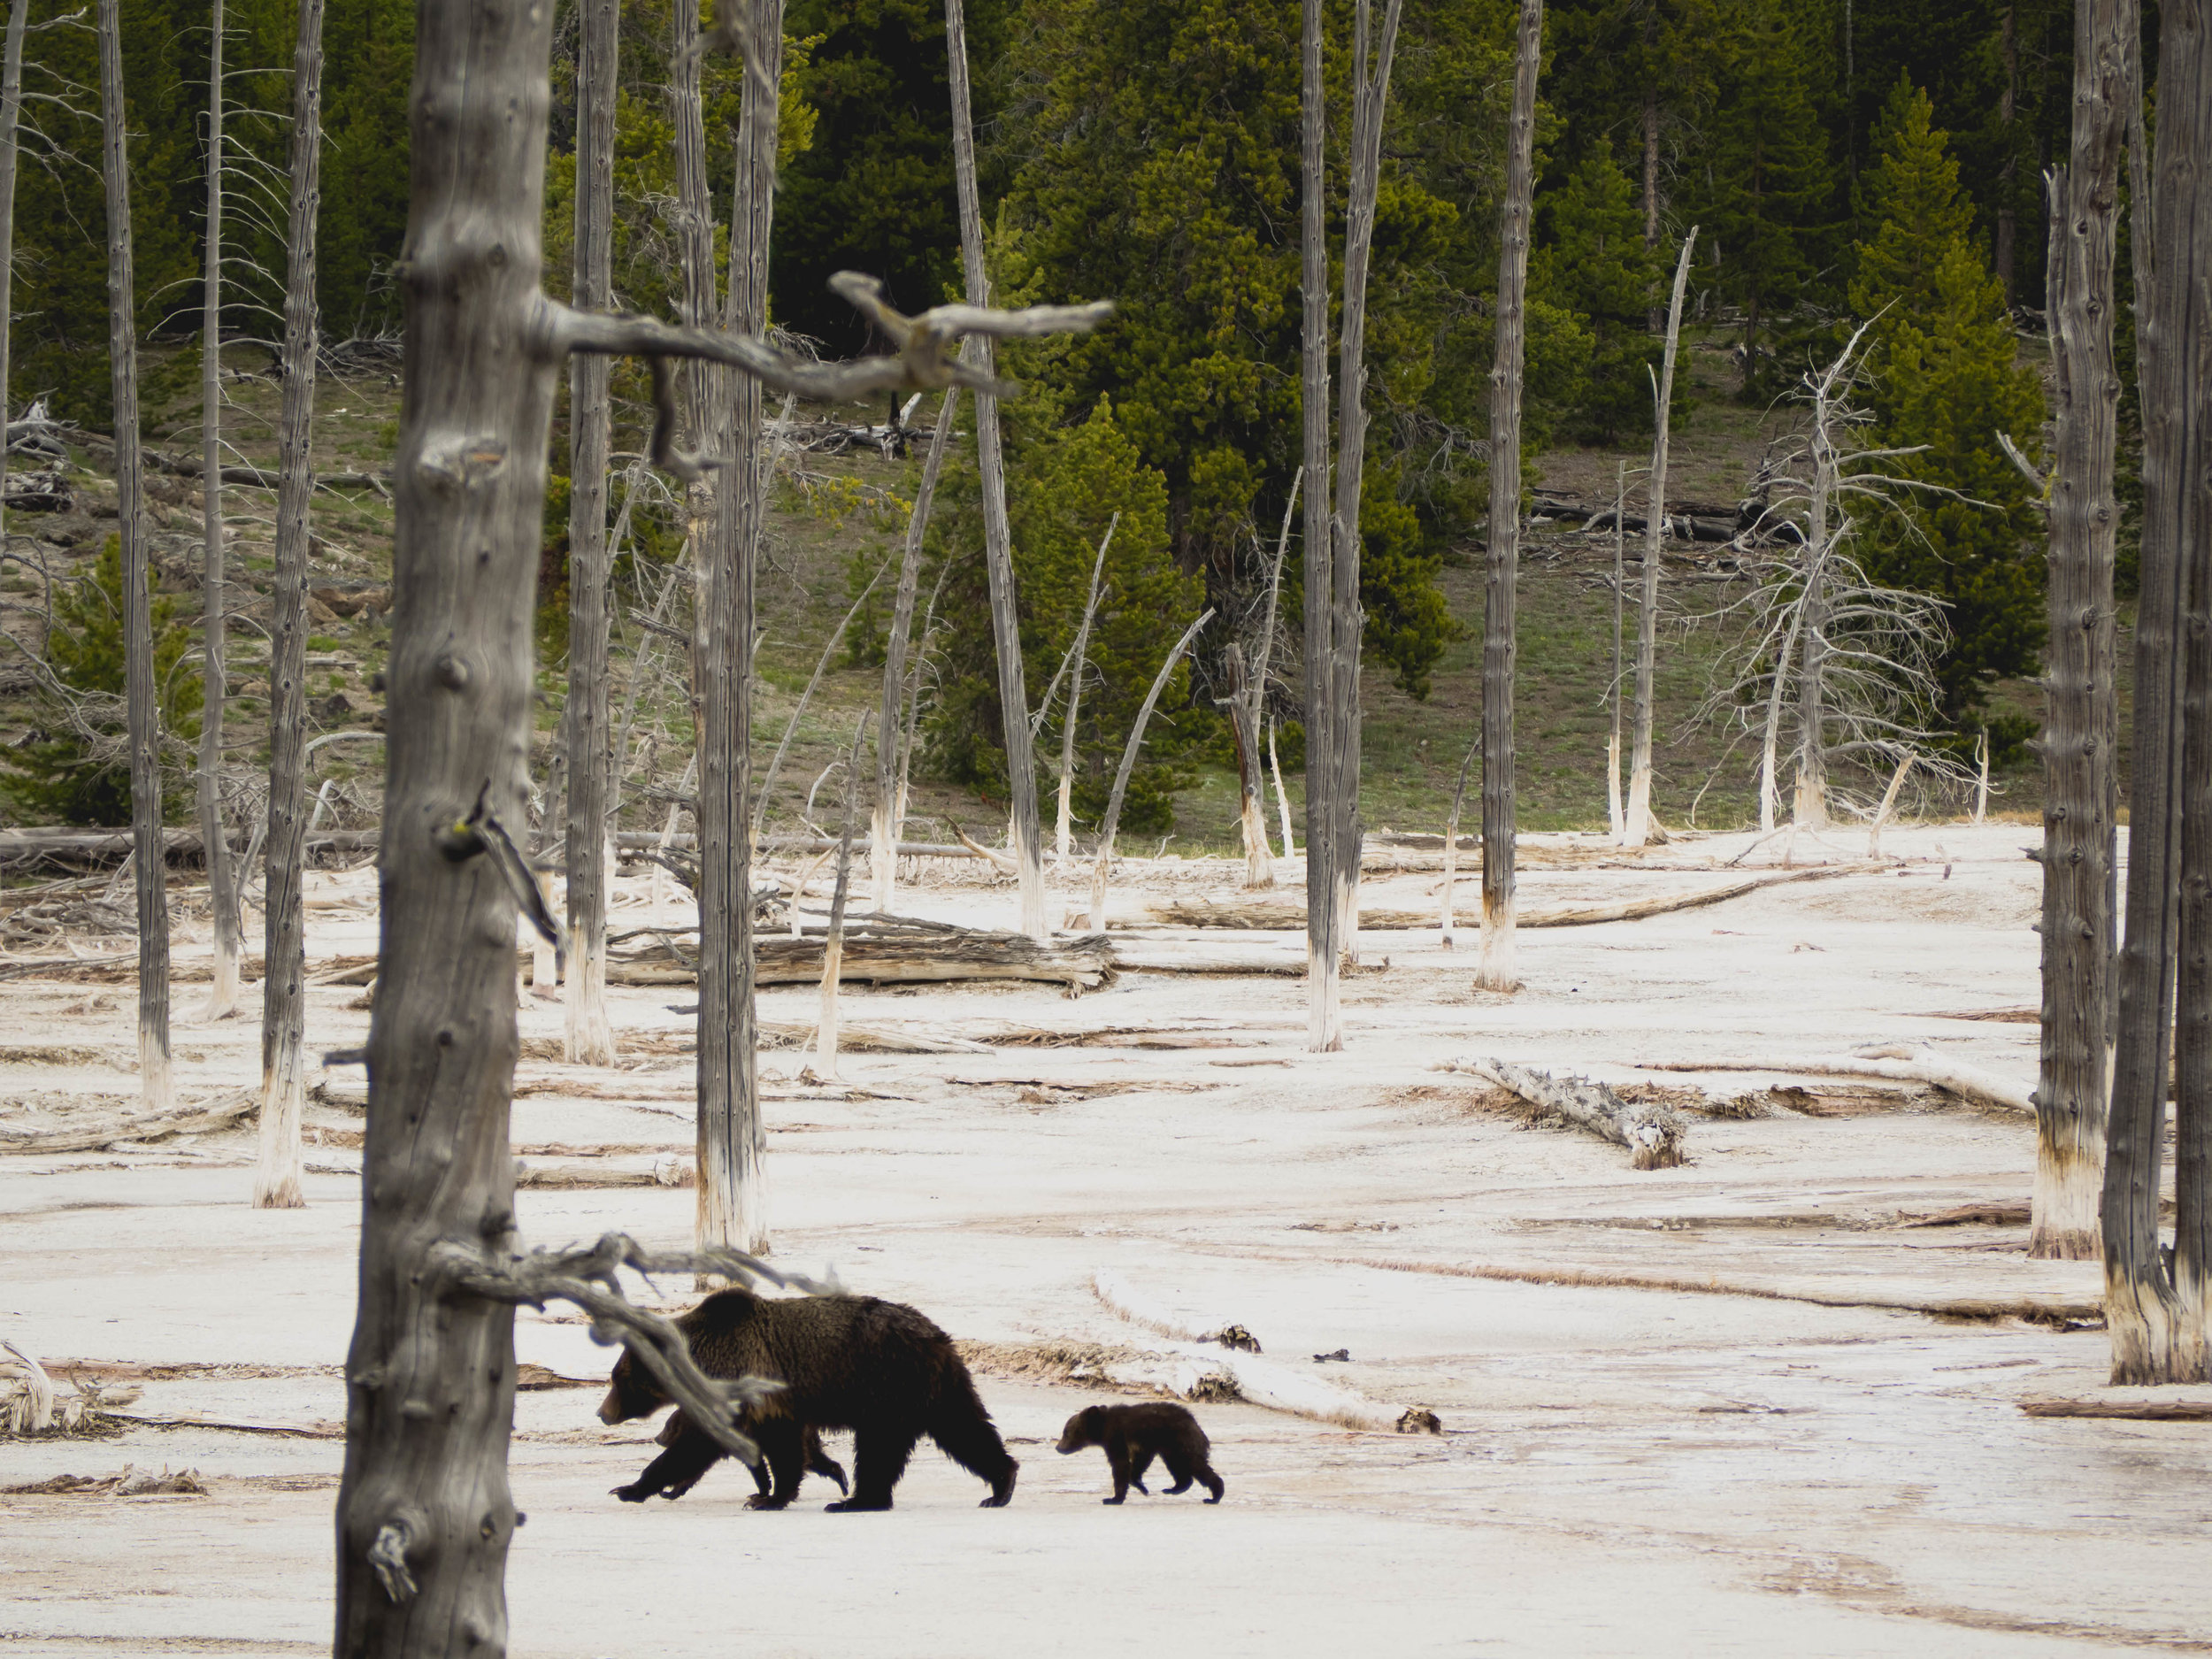 mama grizzly and two cubs.